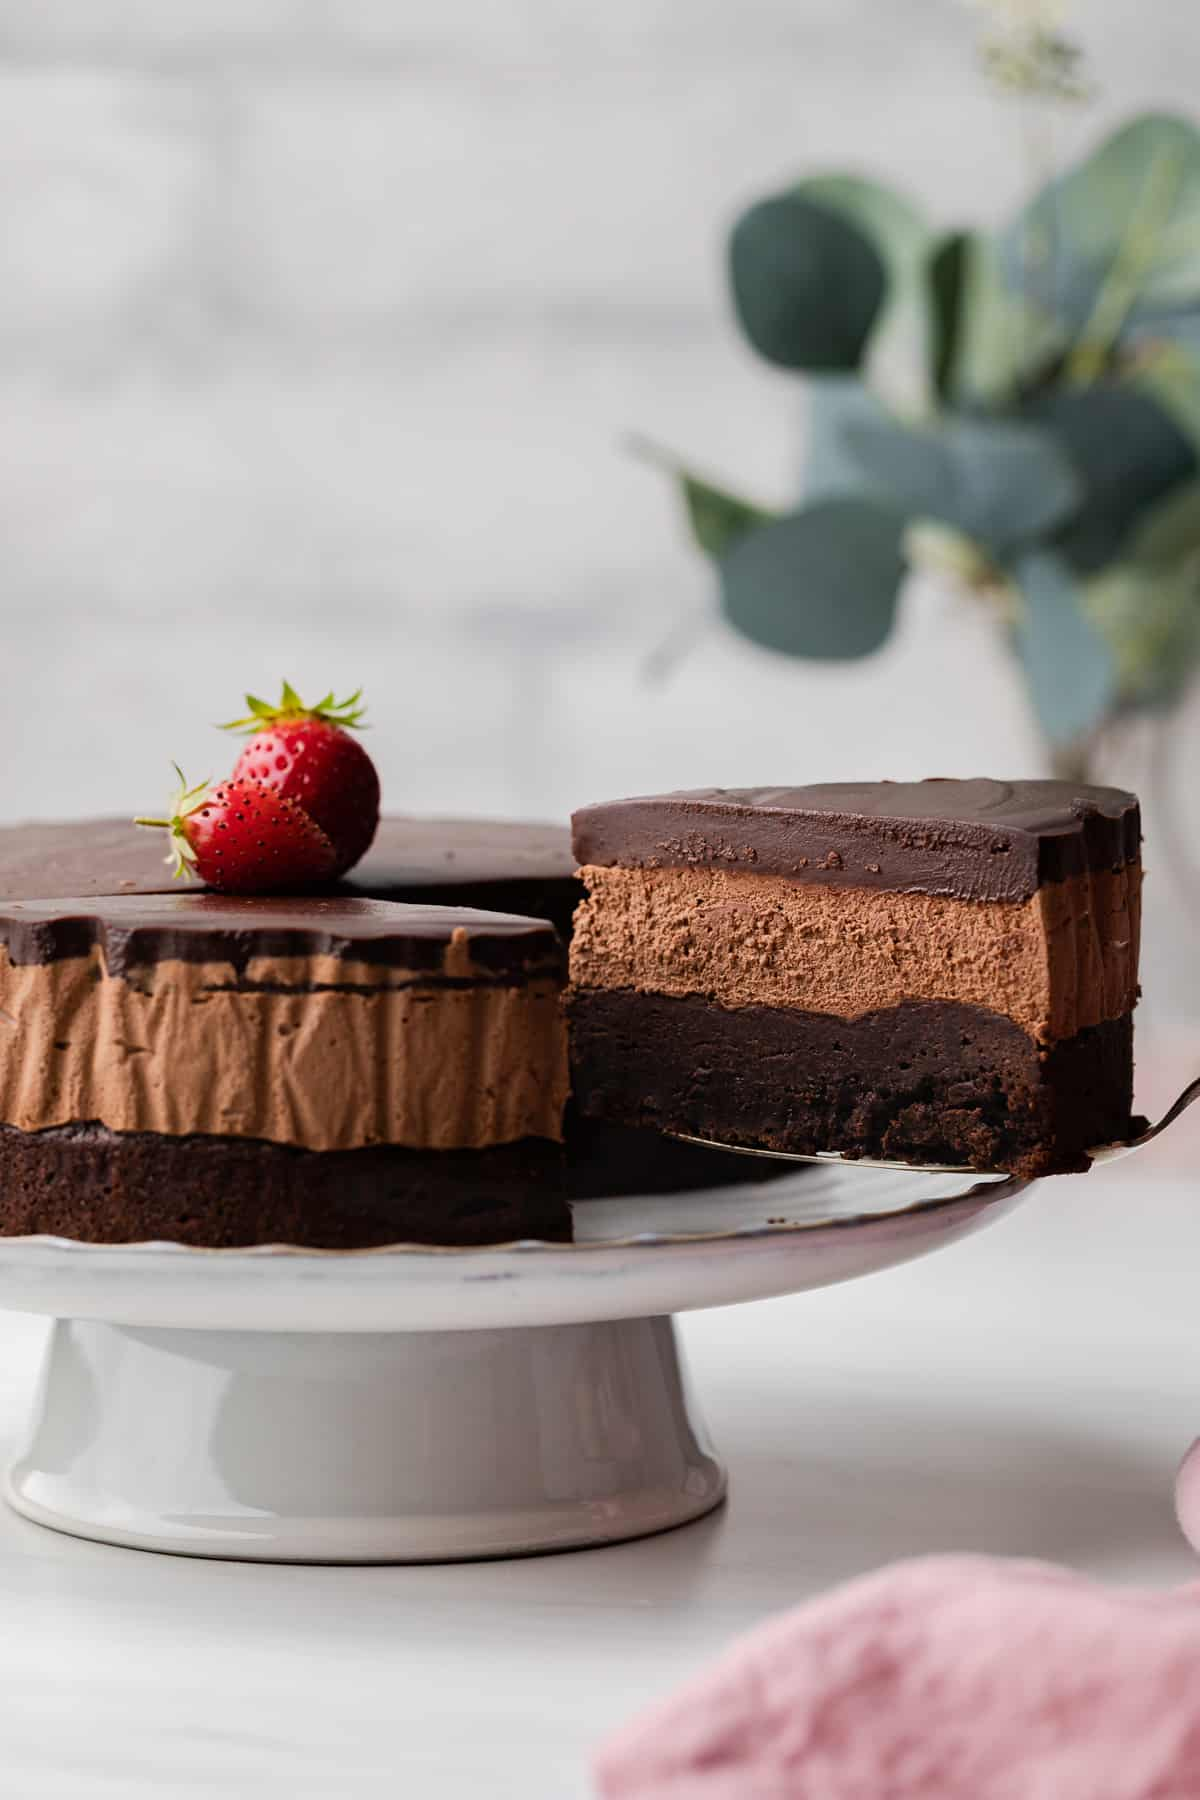 A Close Up View Of Triple Chocolate Mousse Cake Sitting On White Plate With